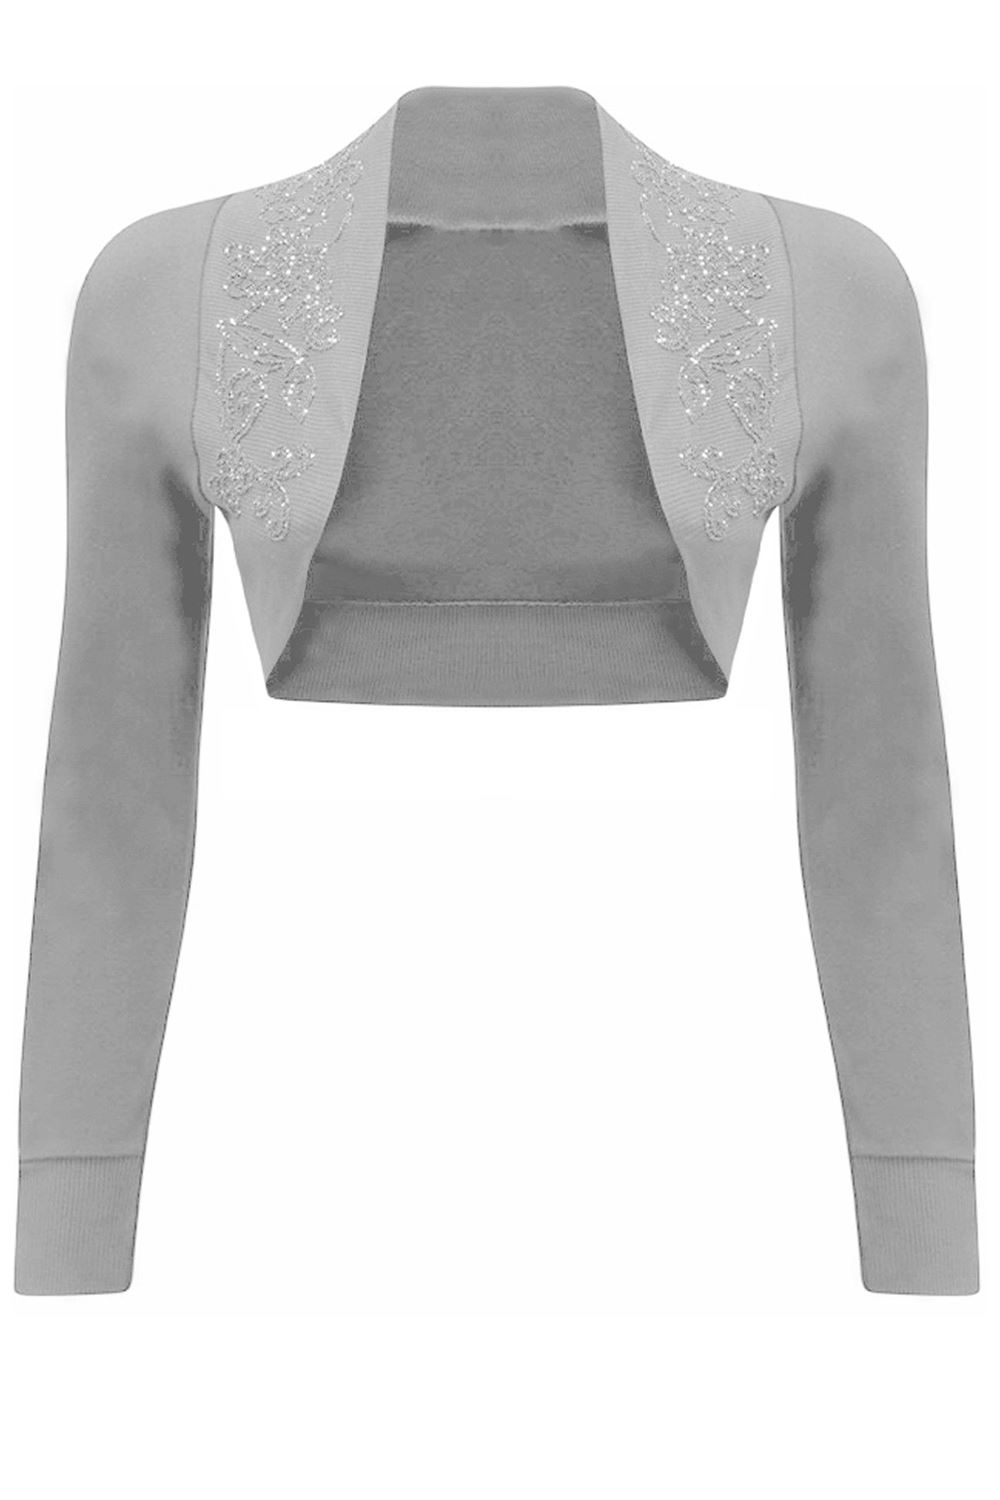 b3ccc8a52d6 Plus Size Ladies Womens Beaded Long Sleeve Collared Bolero Crop ...